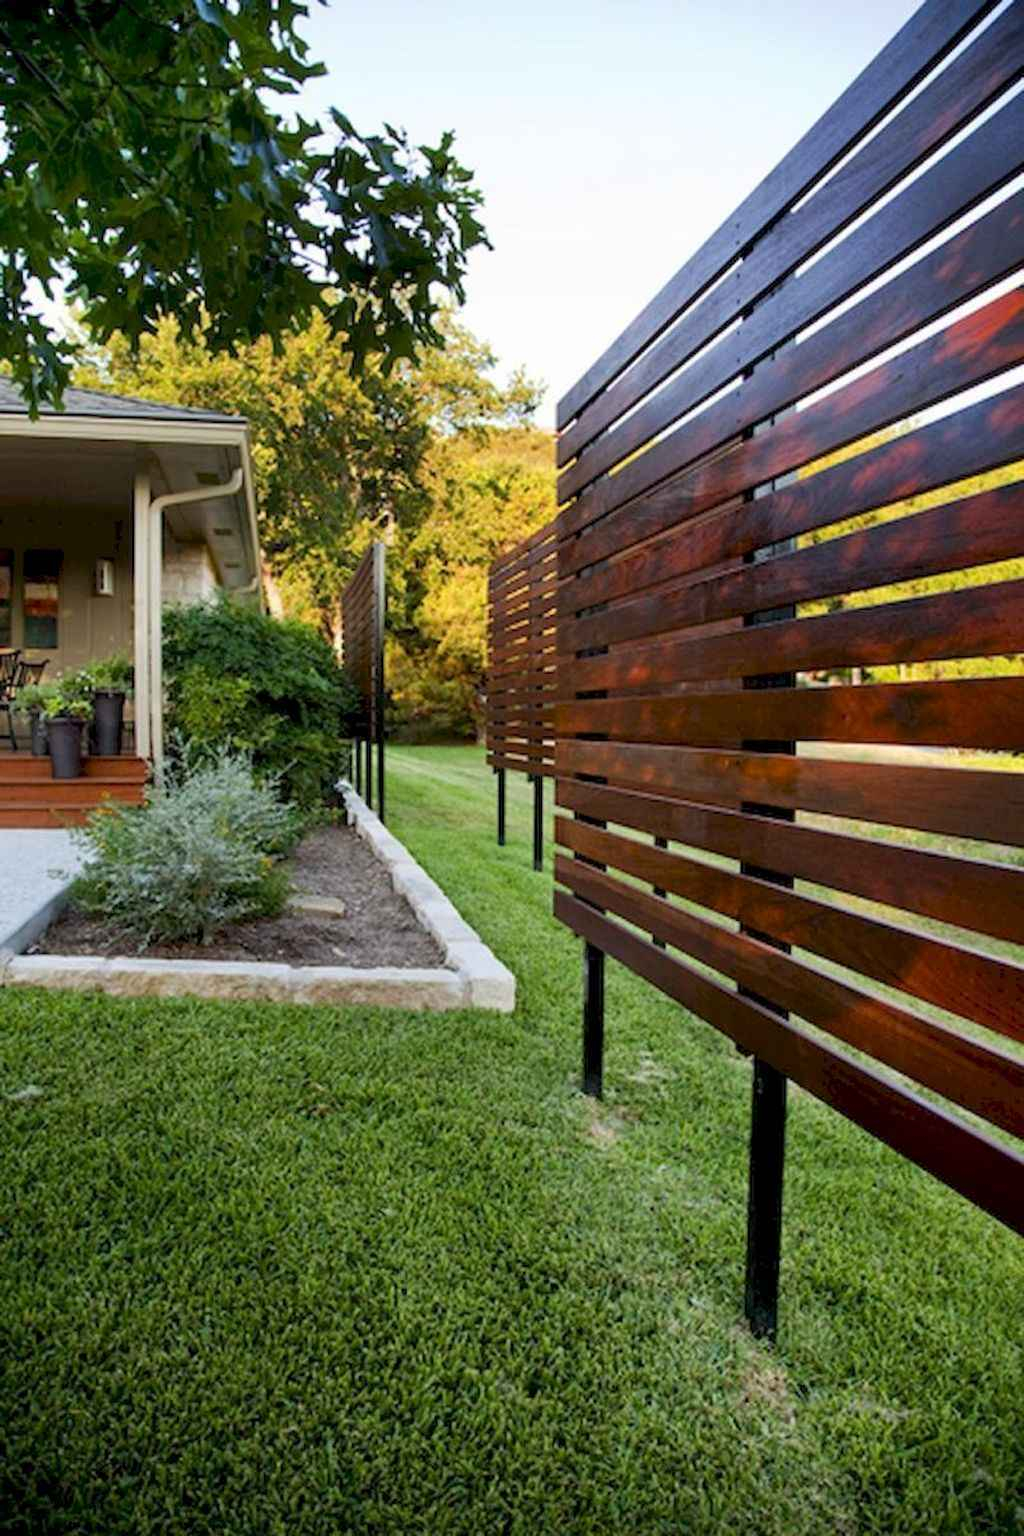 16 Inspired Backyard Privacy Fence Design Ideas Doitdecor within 10 Smart Ideas How to Improve Backyard Privacy Ideas